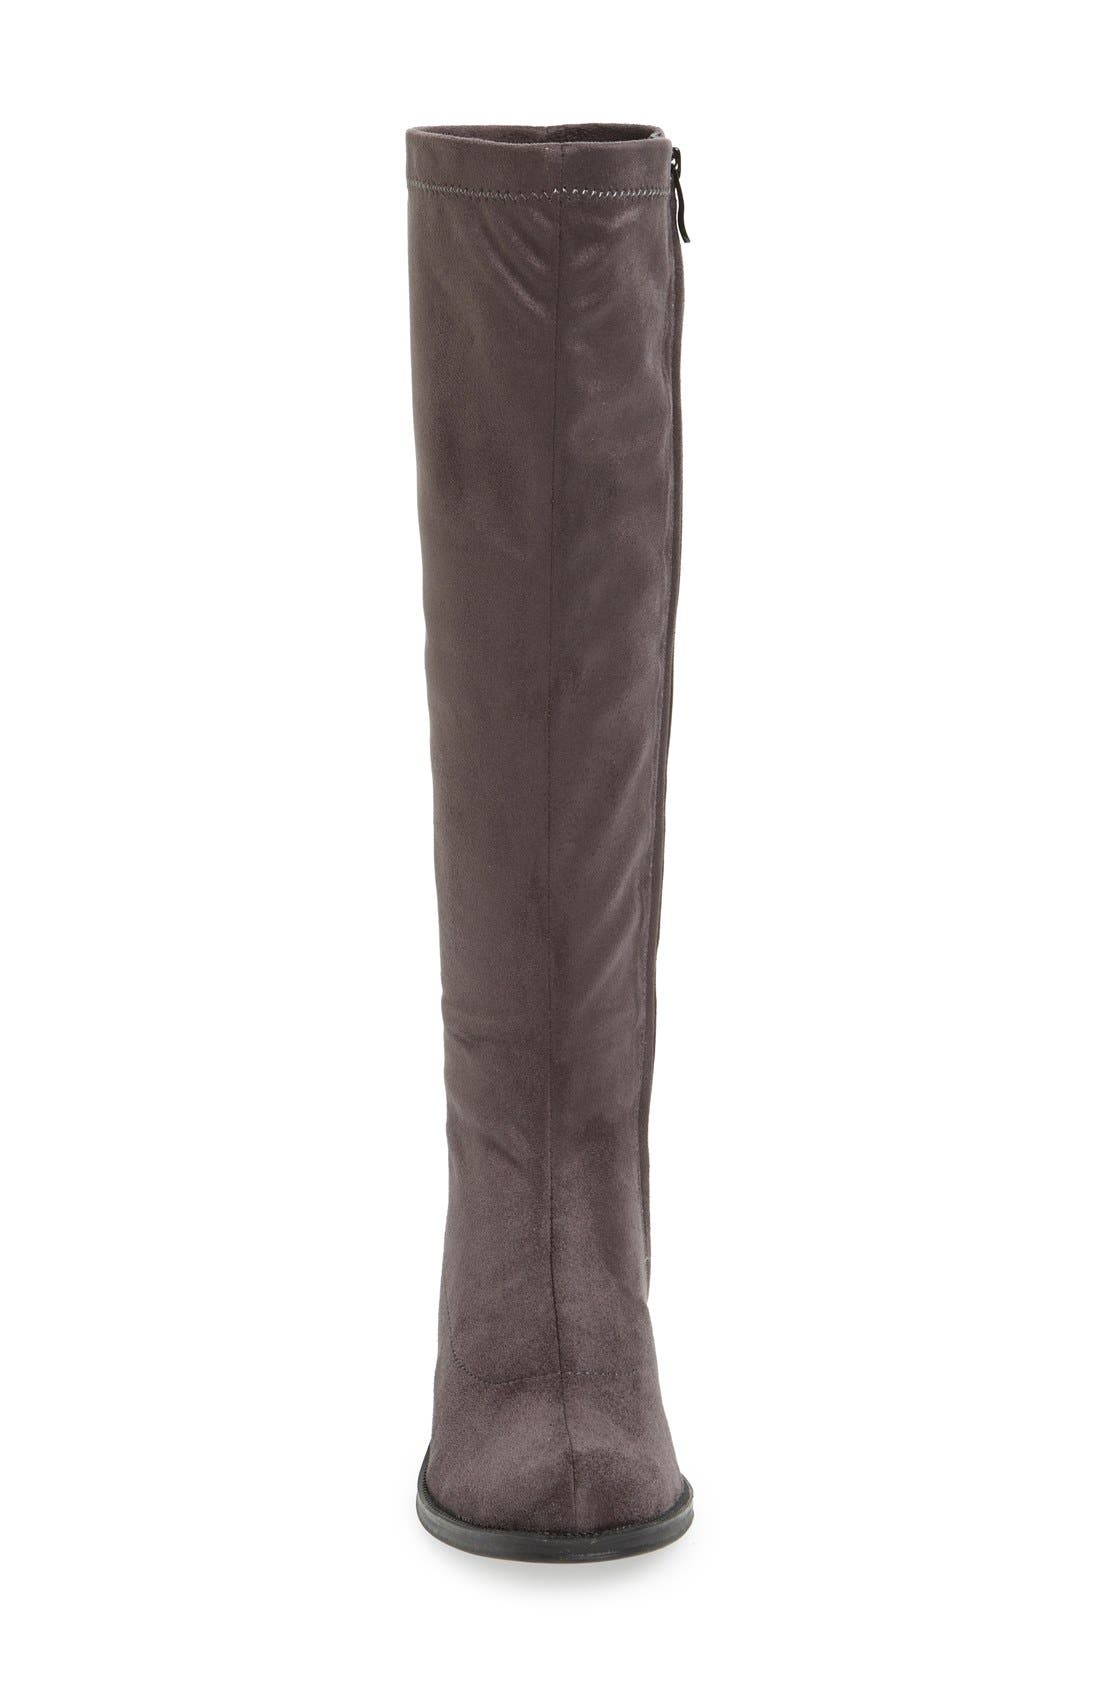 Alternate Image 3  - Bussola 'Sofia' Tall Boot (Women)